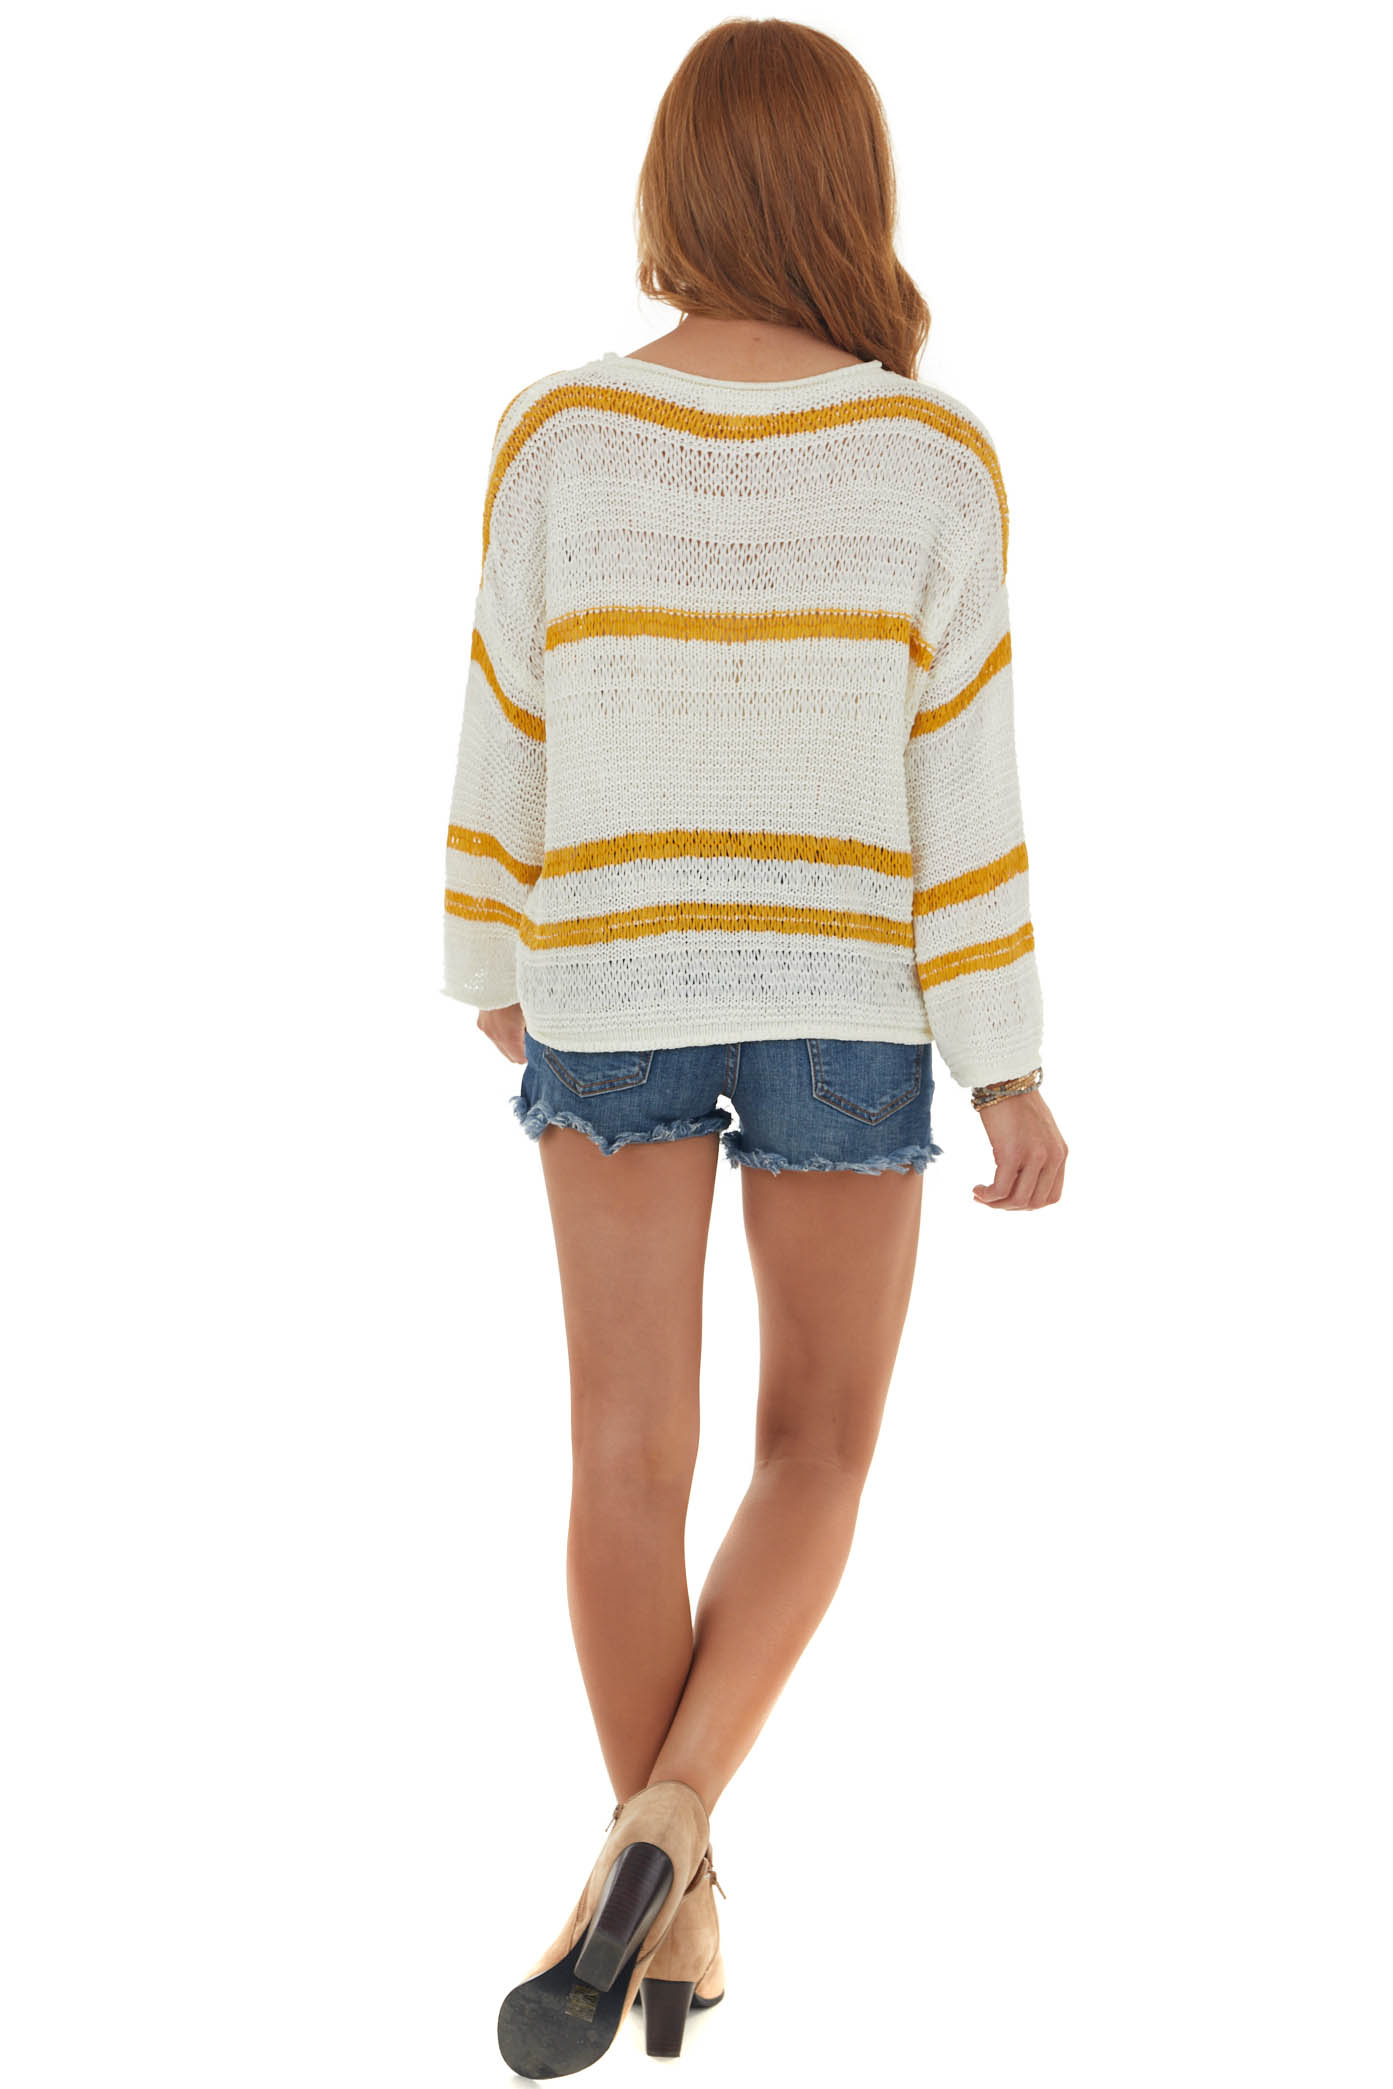 Ivory Striped Long Sleeve Loose Knit Sweater